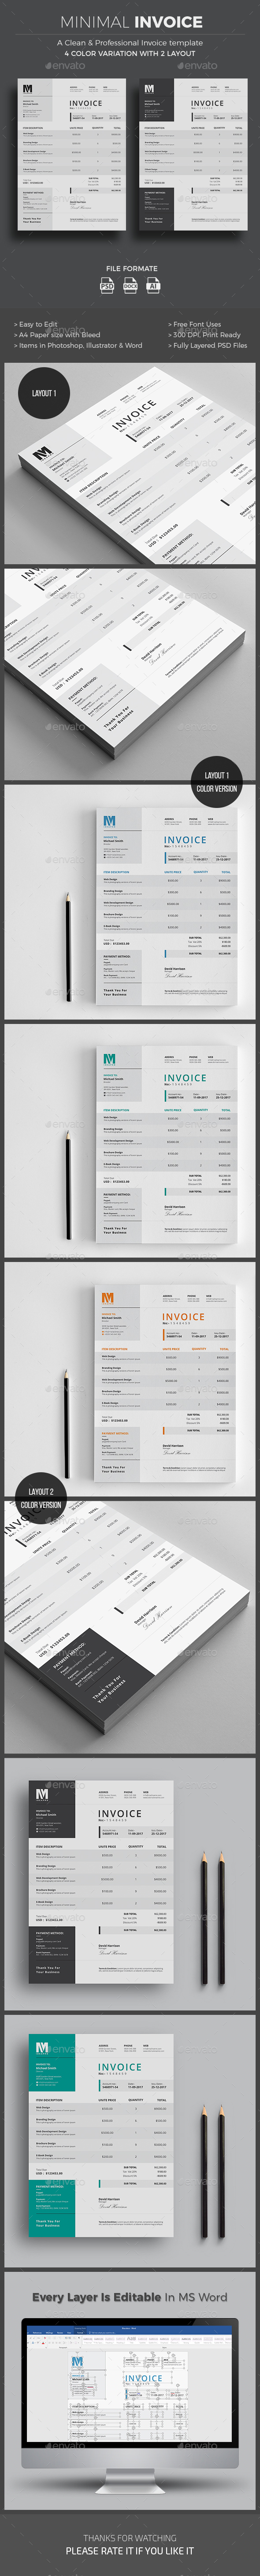 Receipt Reimbursement Word Business Proposal  Invoice Templates From Graphicriver Format Of Invoice Bill Word with Receipt Voucher Sample  Nordstrom Rack Return Policy No Receipt Pdf